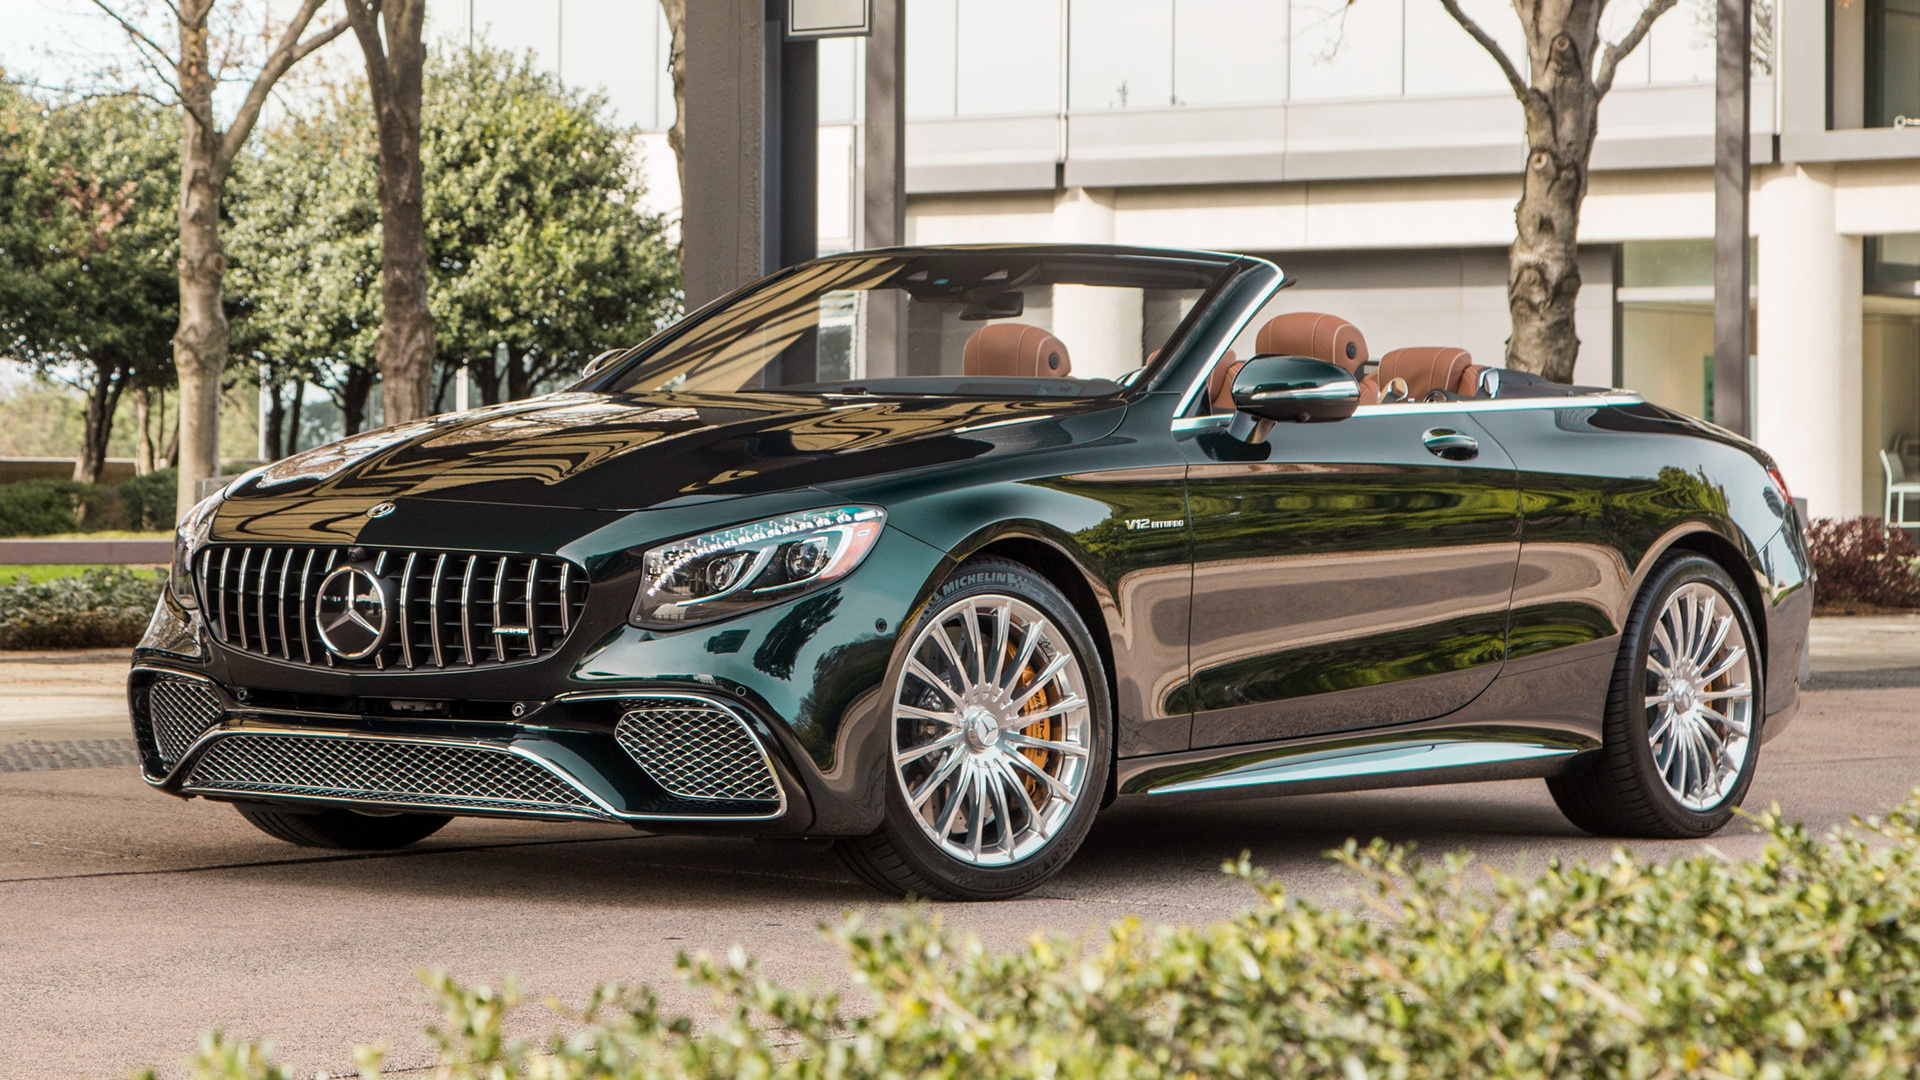 S Class Cabriolet >> 2018 Mercedes-AMG S 65 Cabriolet (US) - Wallpapers and HD ...